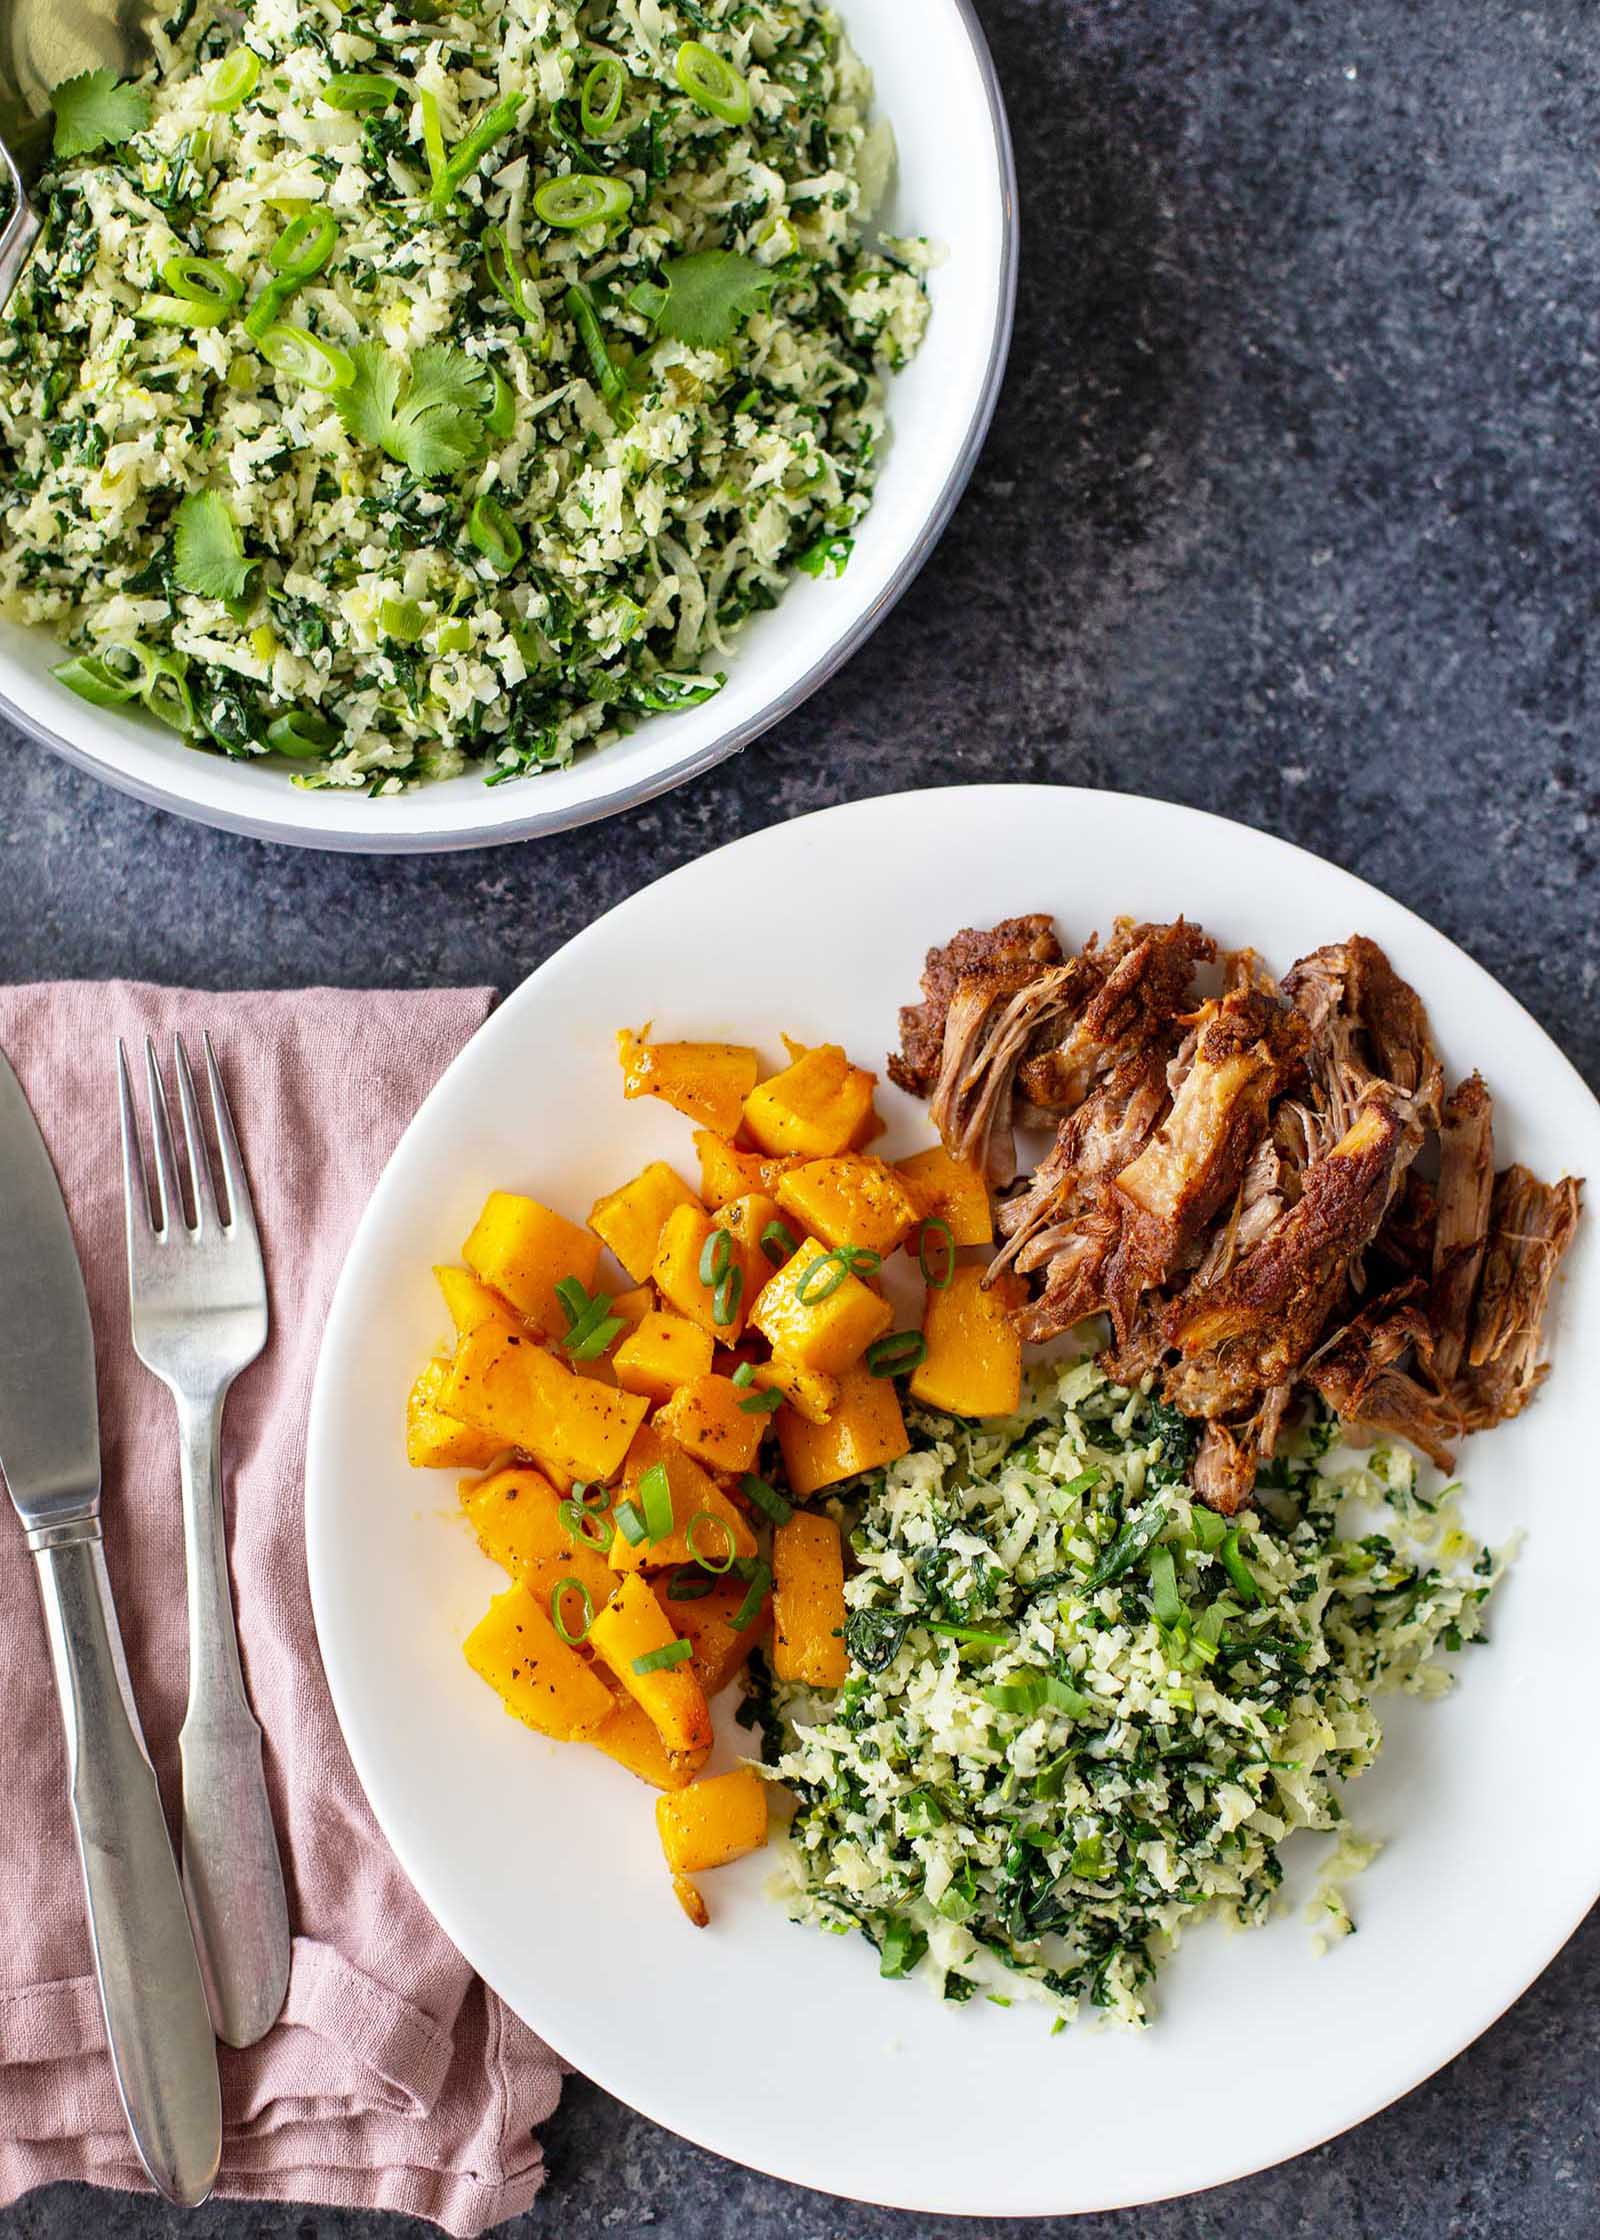 A white plate with healthy cauliflower rice with greens, shredded pork and chopped, roasted butternut squash. A pink linen with a fork and butter knife are to the left. A bowl of Green Cauliflower Rice is in the upper left with chopped scallions and cilantro visible along with the green rice.